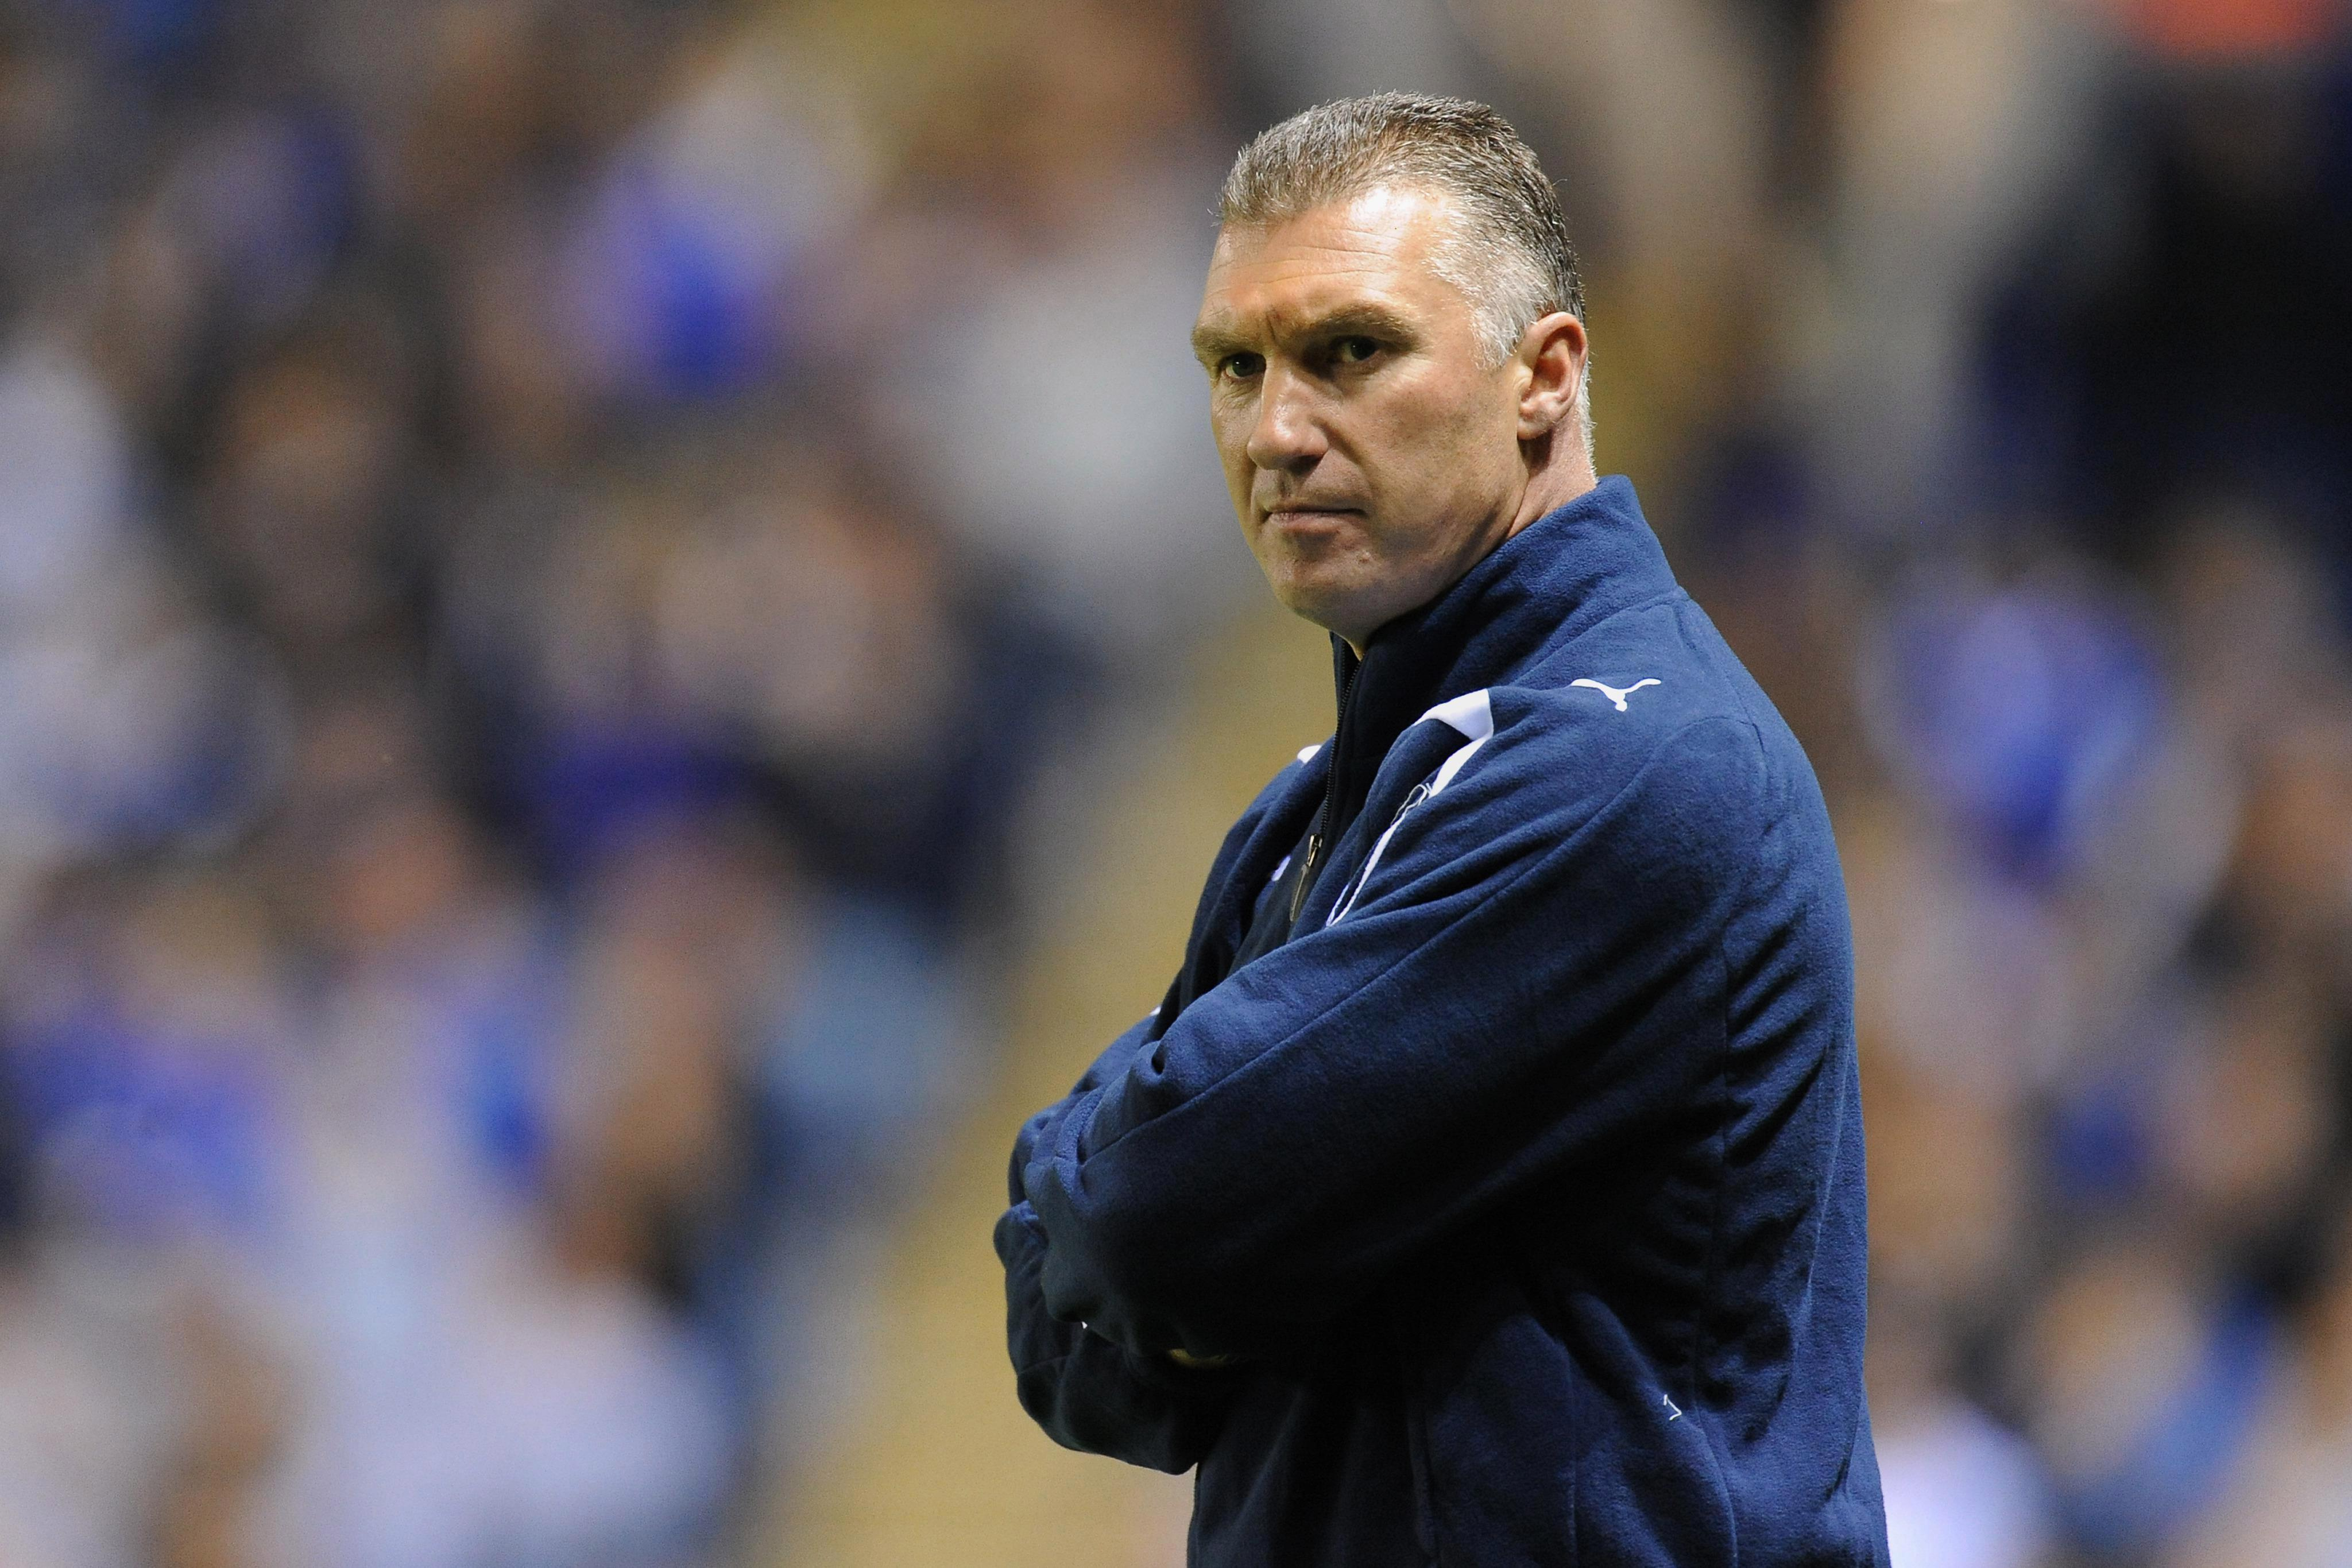 Nigel Pearson has revealed his interest in becoming Middlesbrough's new manager